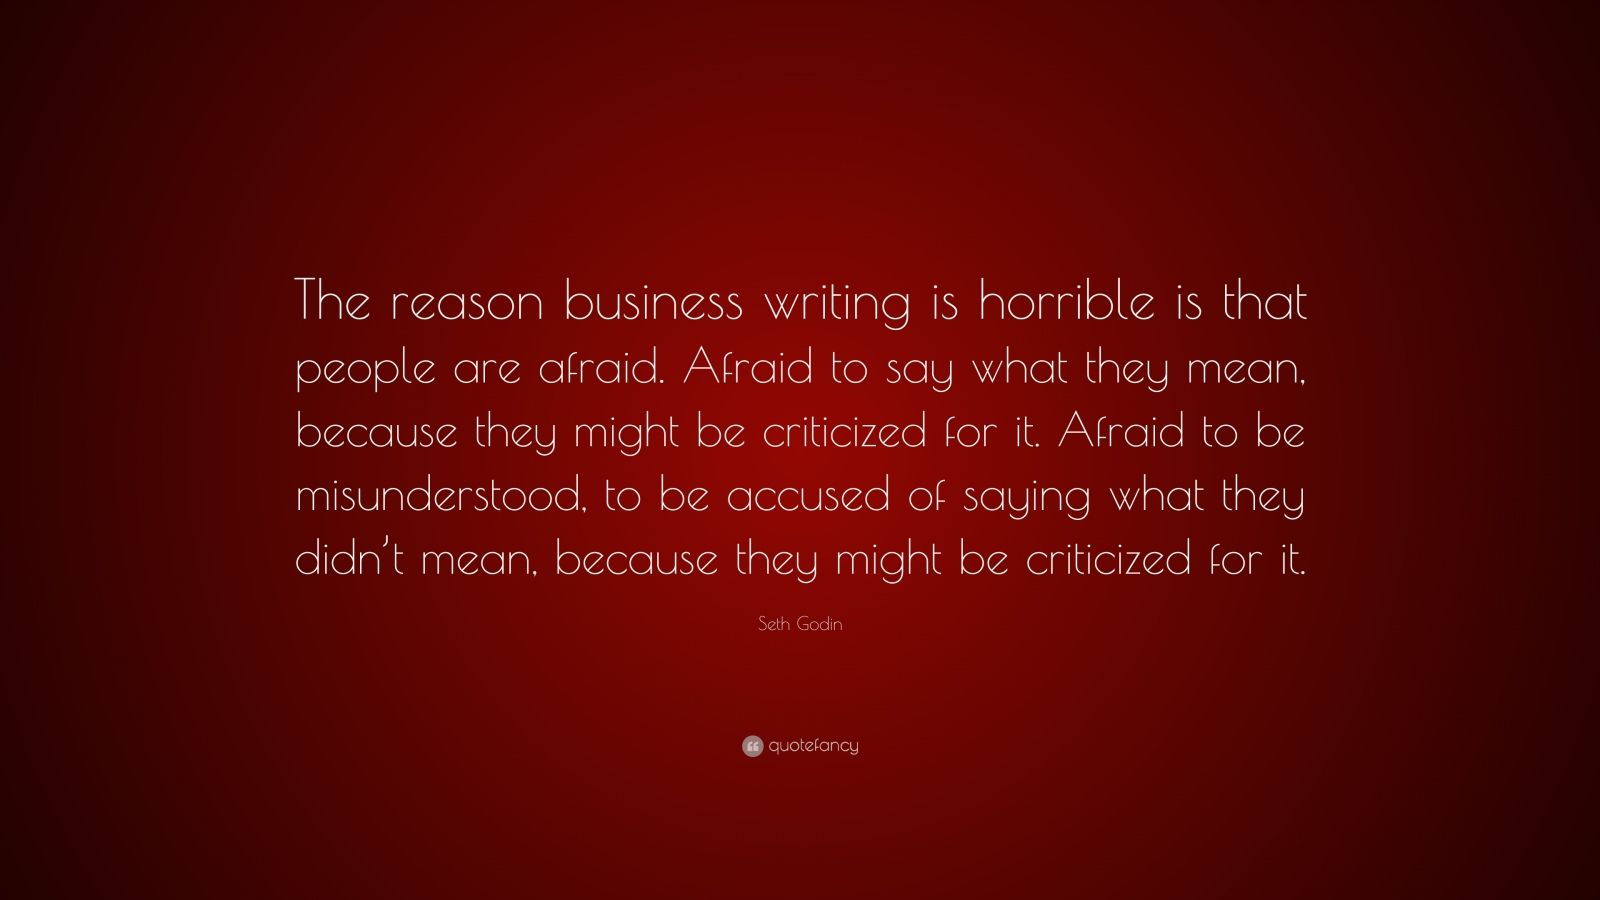 """Seth Godin Quote: """"The reason business writing is horrible is that people are afraid. Afraid to say what they mean, because they might be criticized for it. Afraid to be misunderstood, to be accused of saying what they didn't mean, because they might be criticized for it."""""""